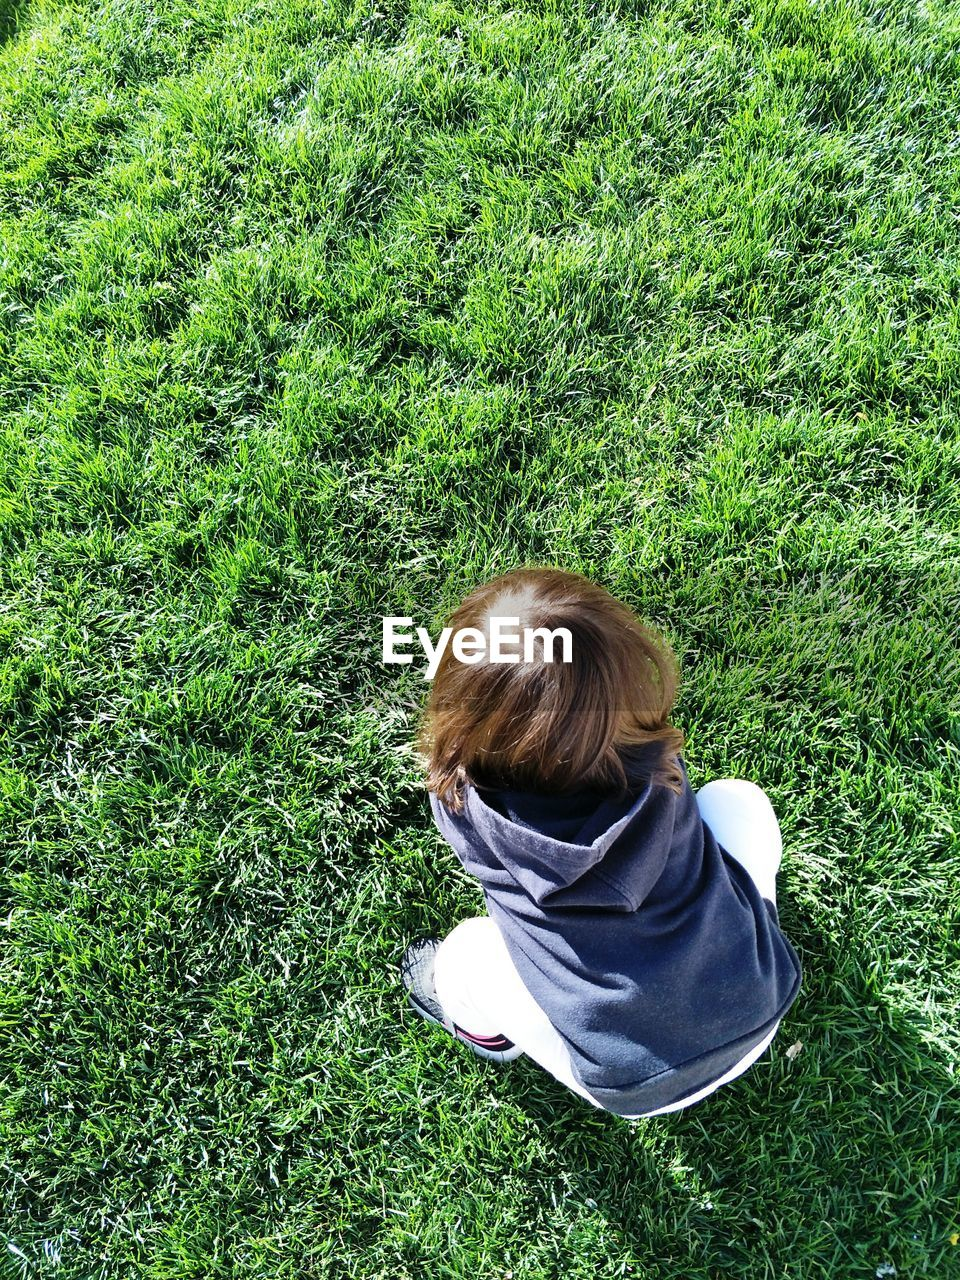 grass, green color, plant, rear view, real people, land, high angle view, leisure activity, field, one person, lifestyles, nature, growth, child, day, childhood, casual clothing, hair, relaxation, outdoors, hairstyle